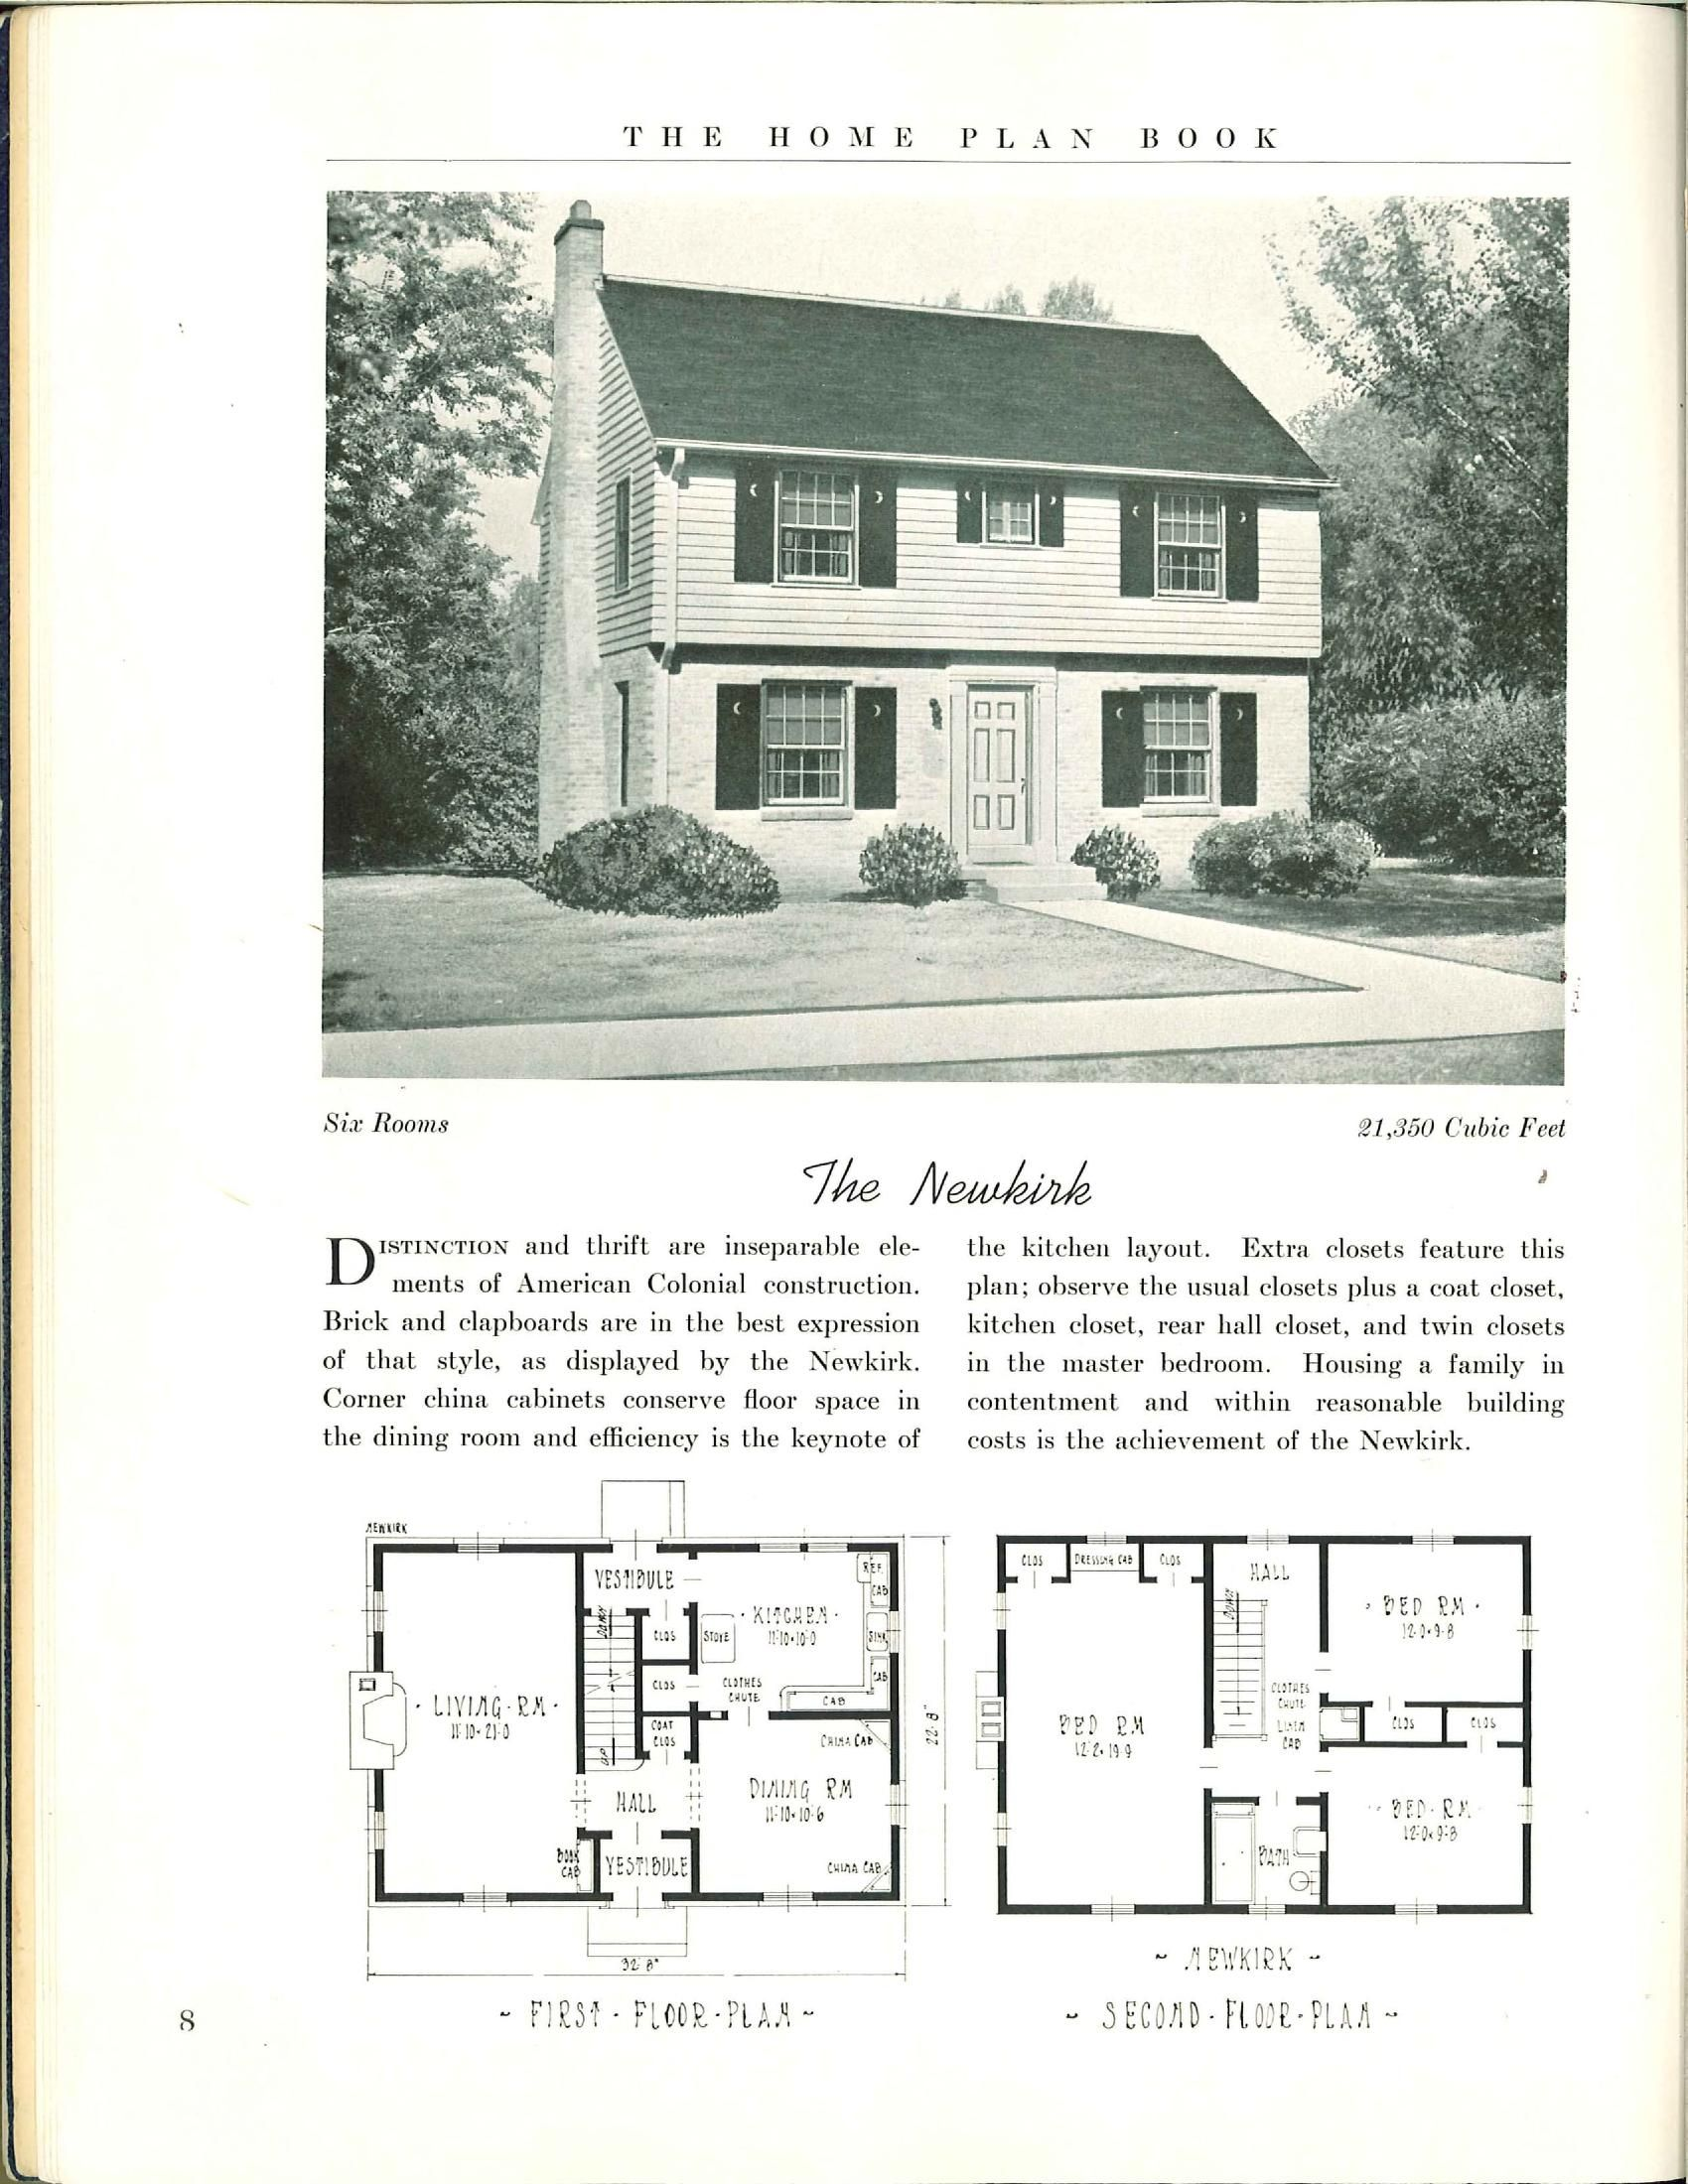 The Home Plan Book 49 Designs Home Plan Book Co Free Download Borrow And Streaming Internet Archive Colonial House Plans House Plans How To Plan